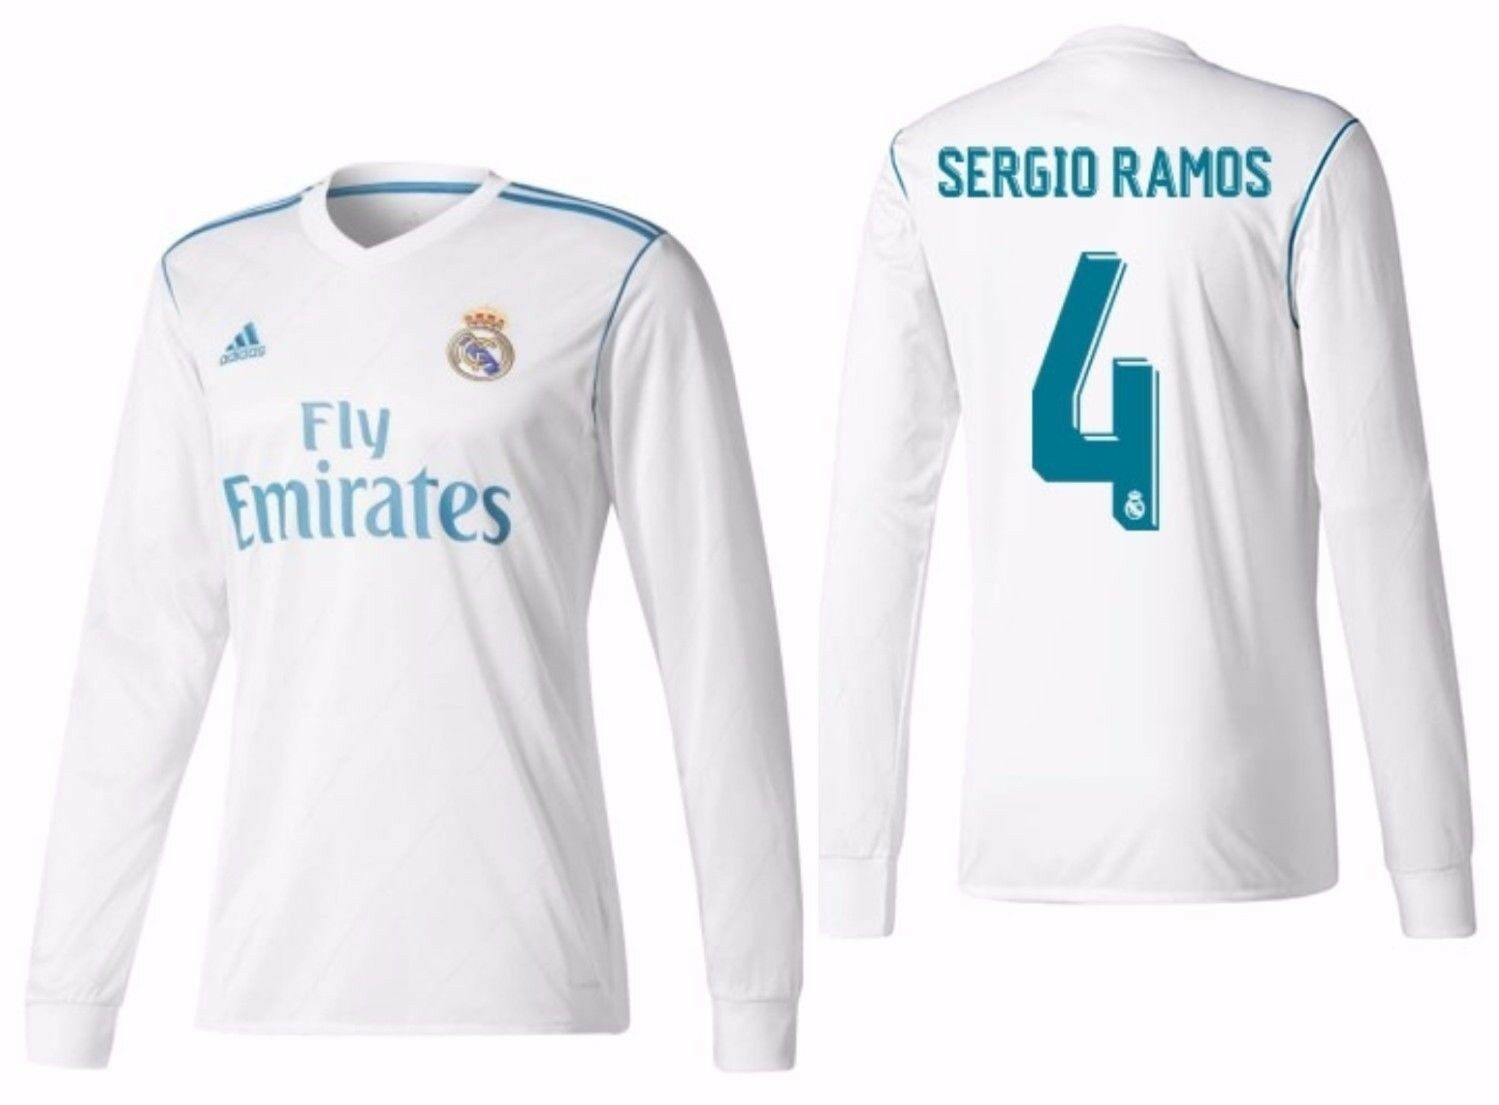 Adidas Sergio Ramos Real Madrid Manga Larga Home Jersey 2017 18